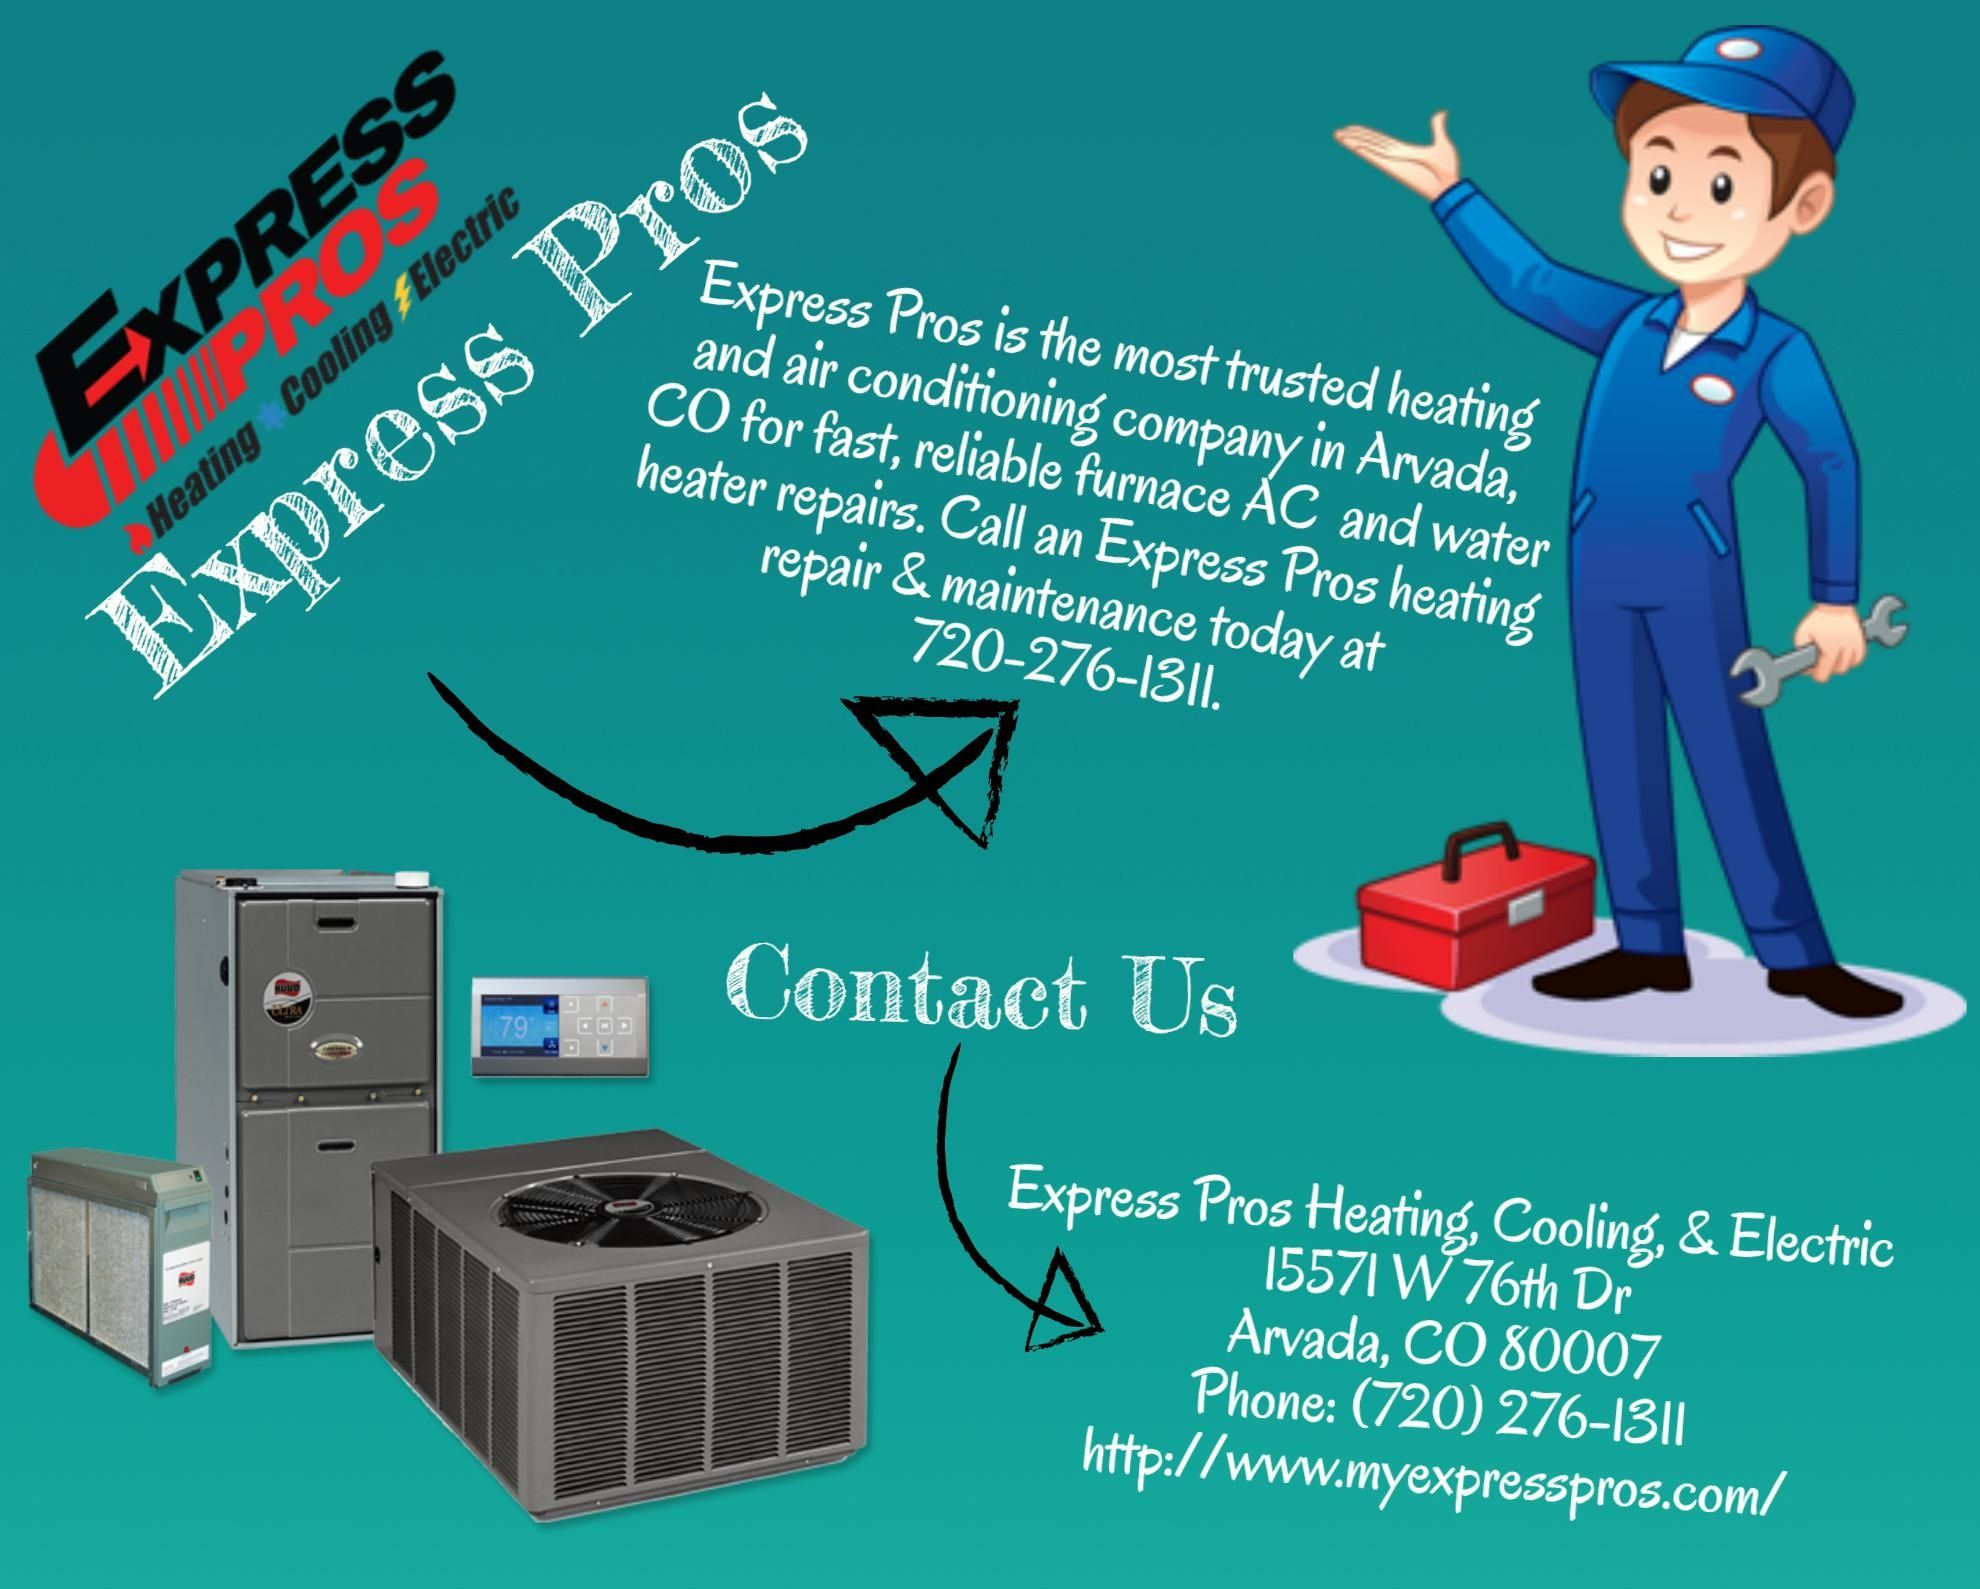 Express Pros Heating Cooling Electric Air Conditioning Companies